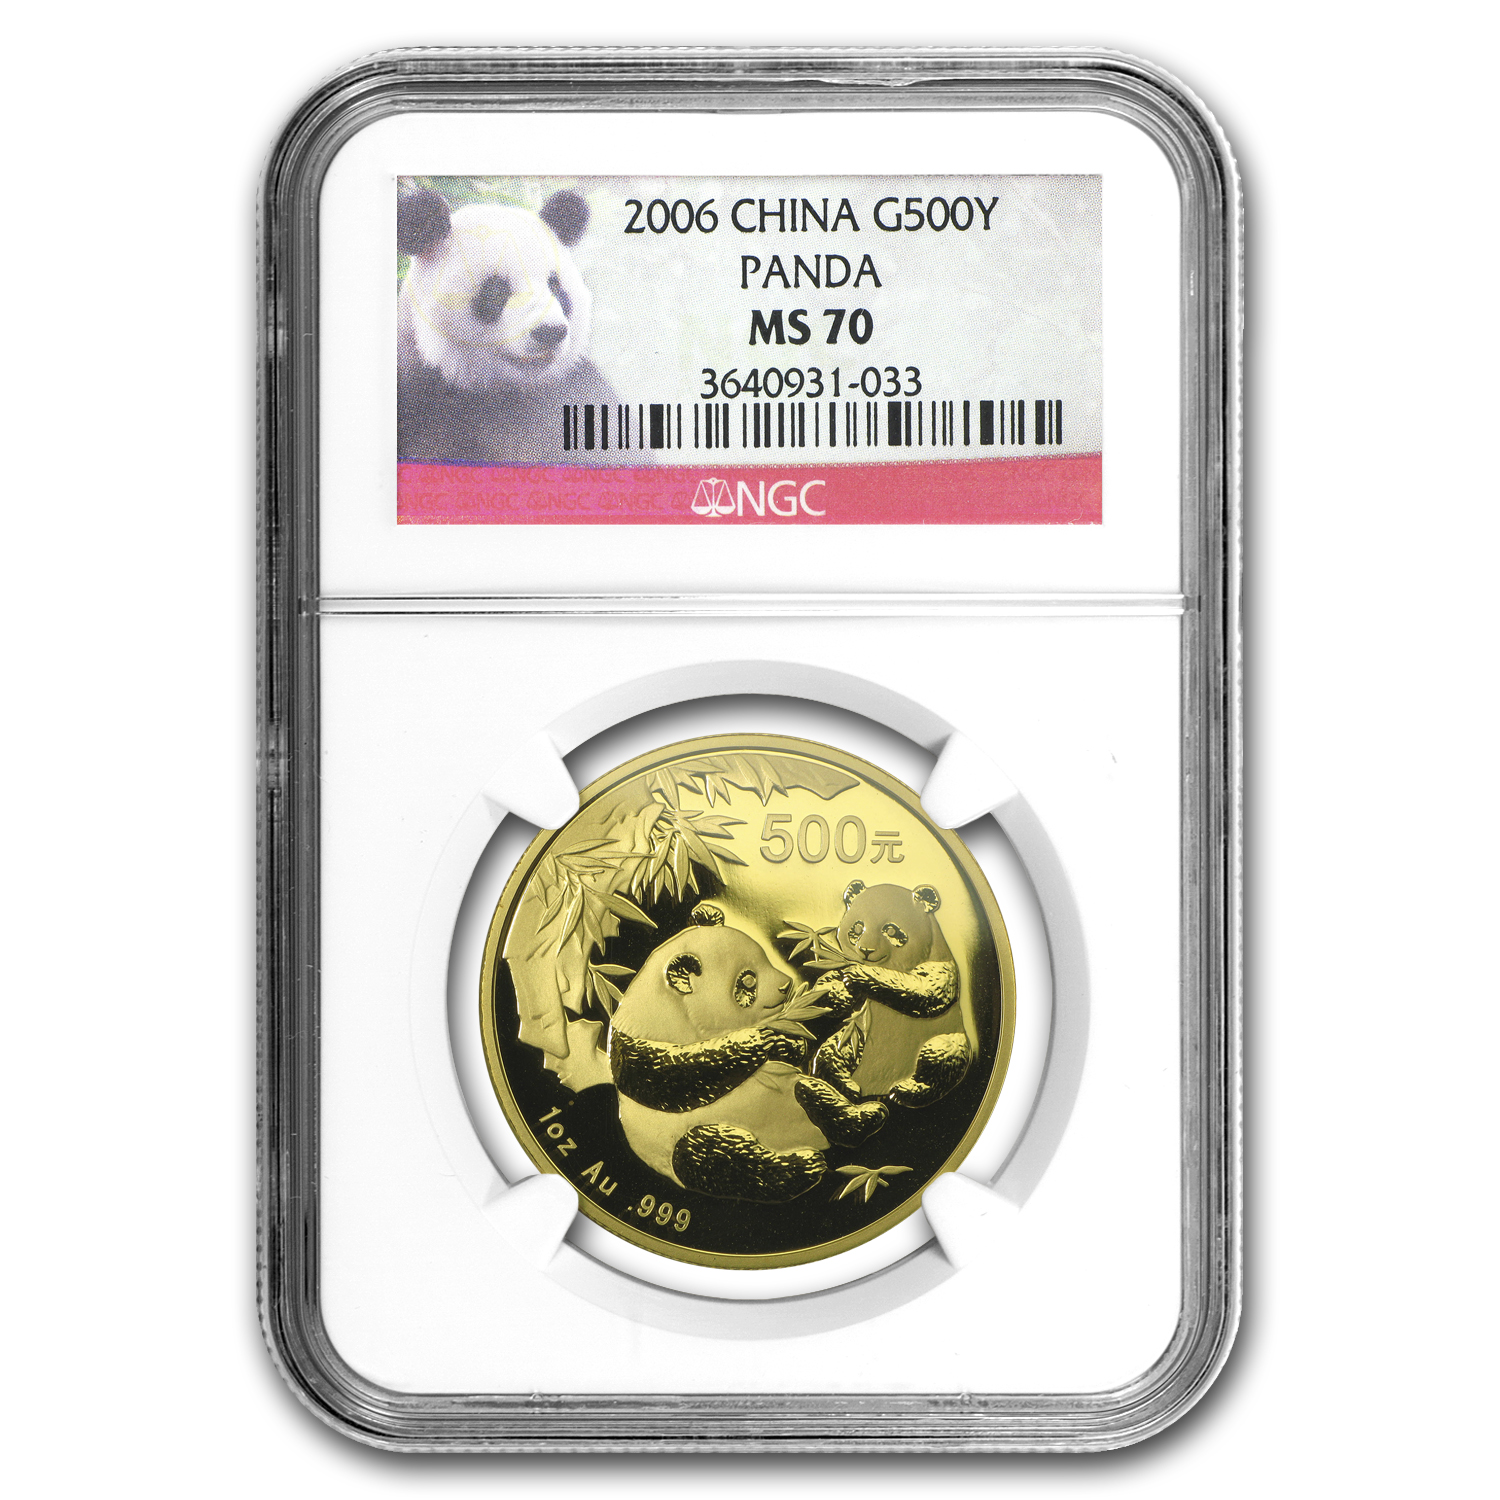 2006 China 1 oz Gold Panda MS-70 NGC